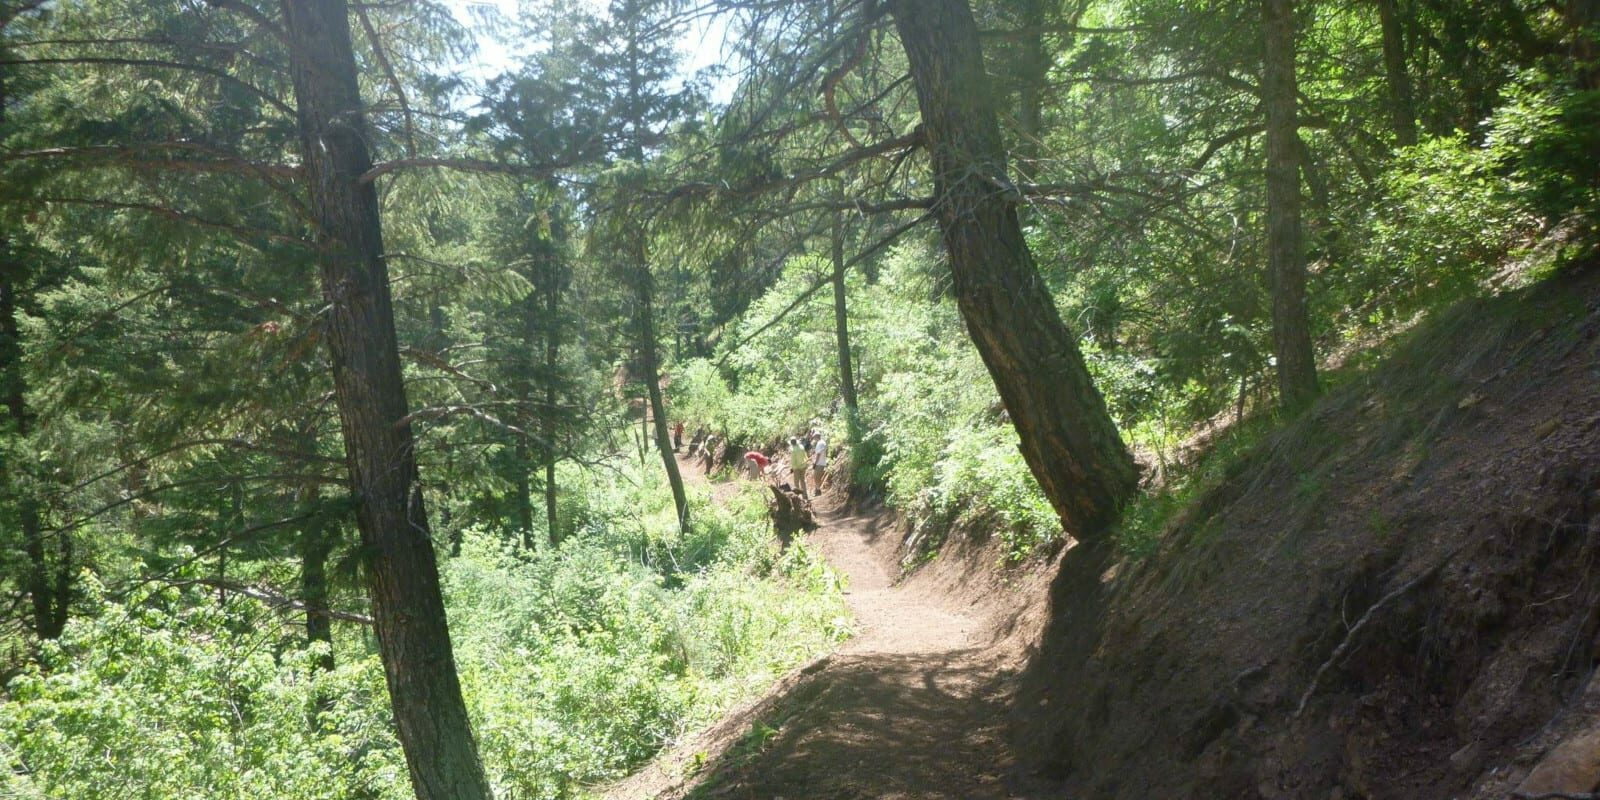 Image of the North Fork Trail at Reynolds Park in Conifer, Colorado